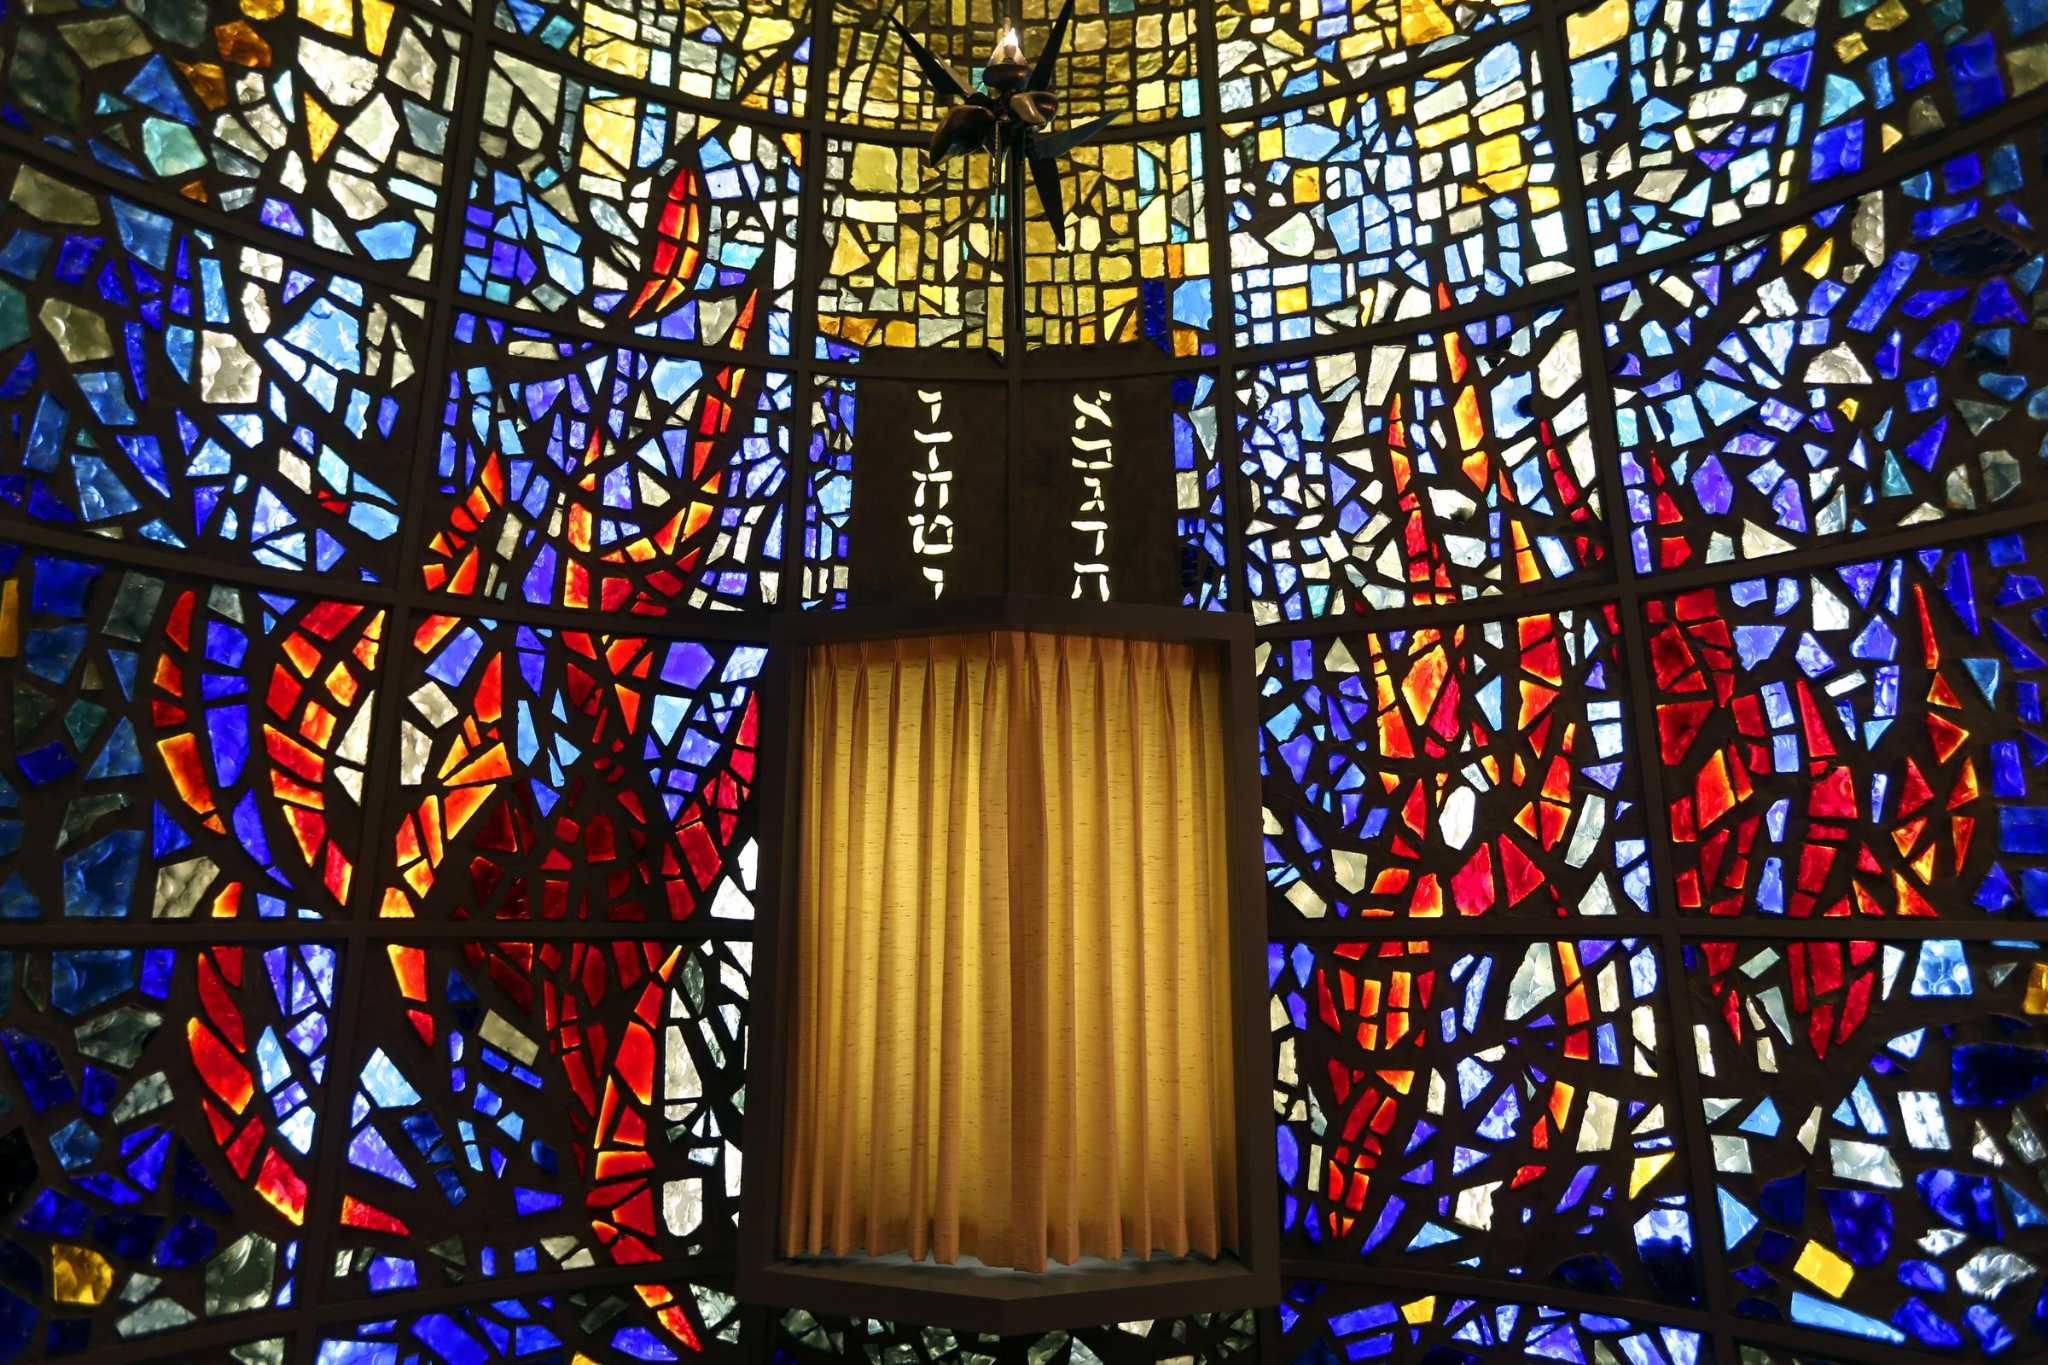 Churches Stained Glass Windows Show And Tell A Story Of